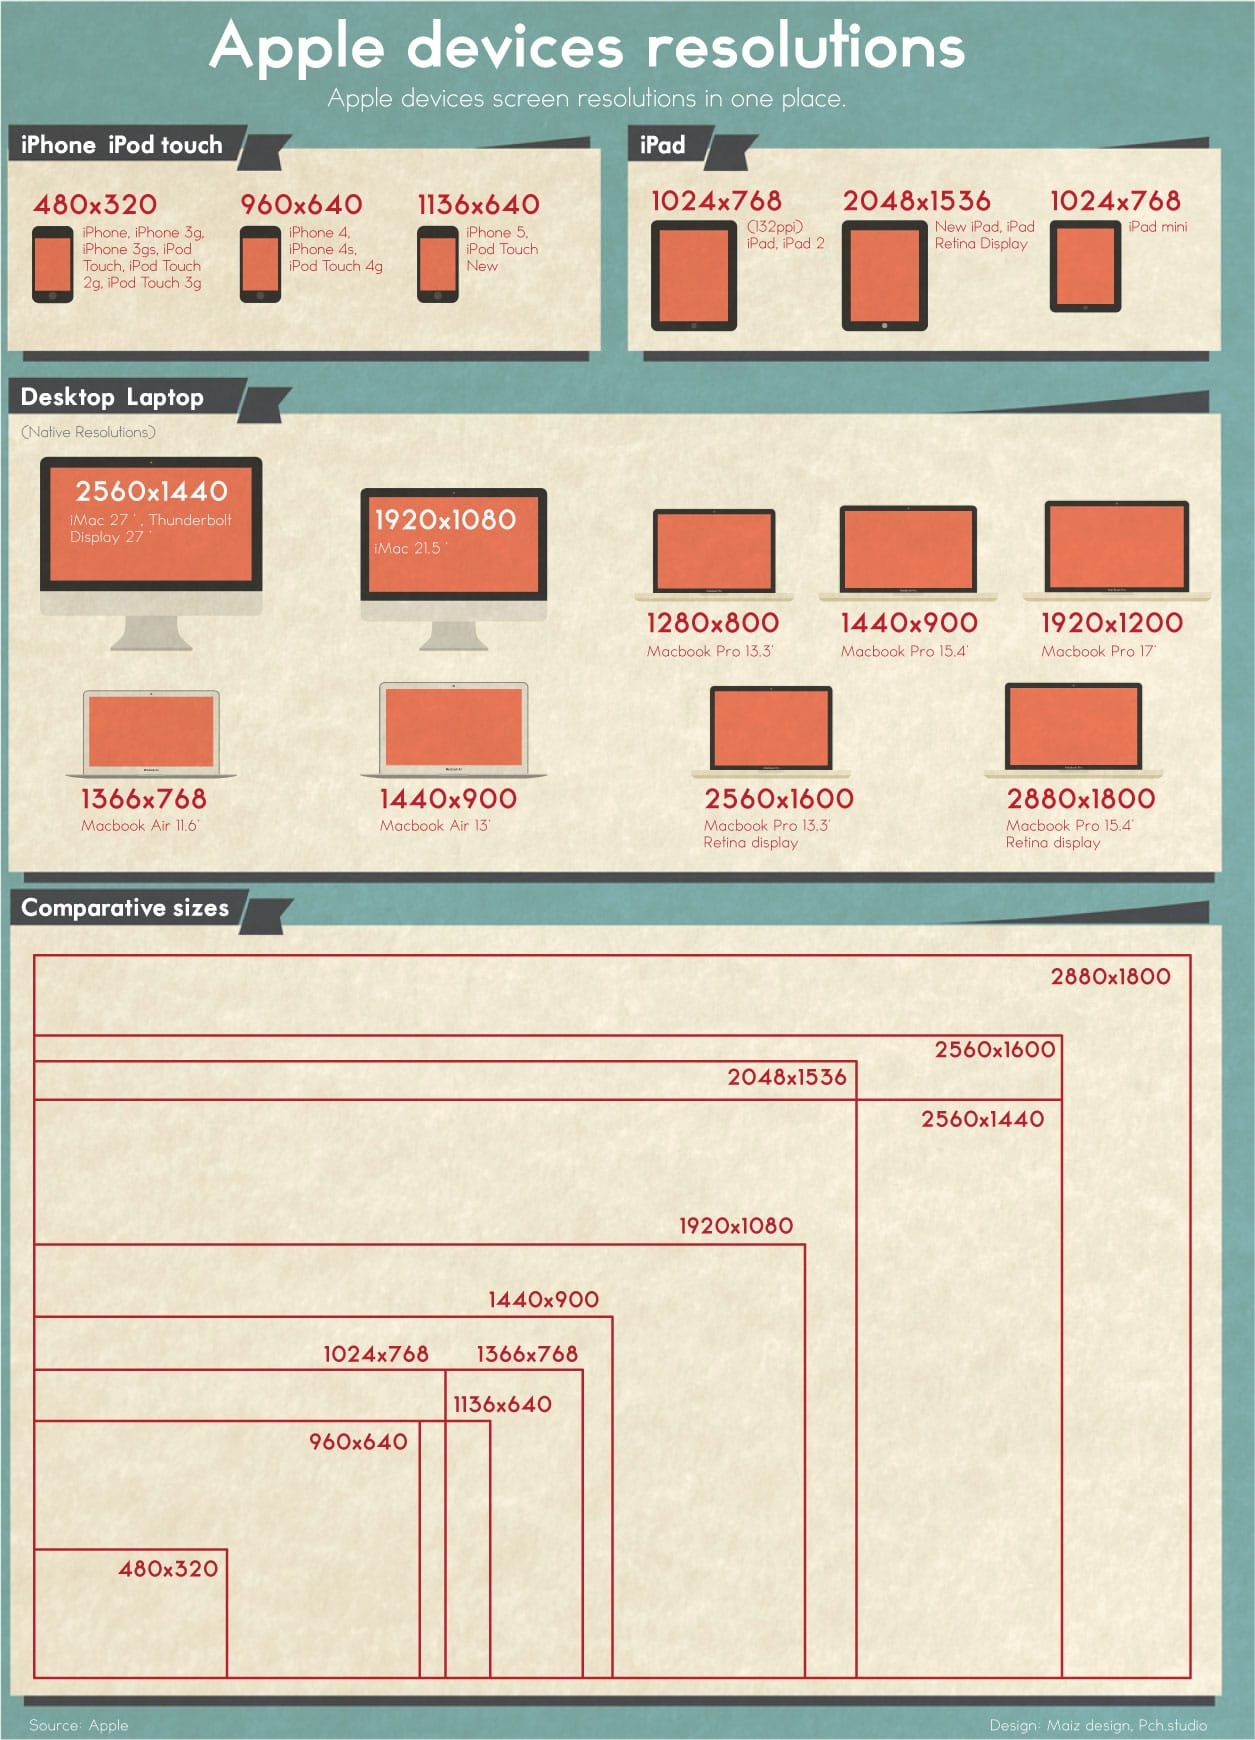 Ultimate Resolution Guide To All Apple Devices [Infographic]